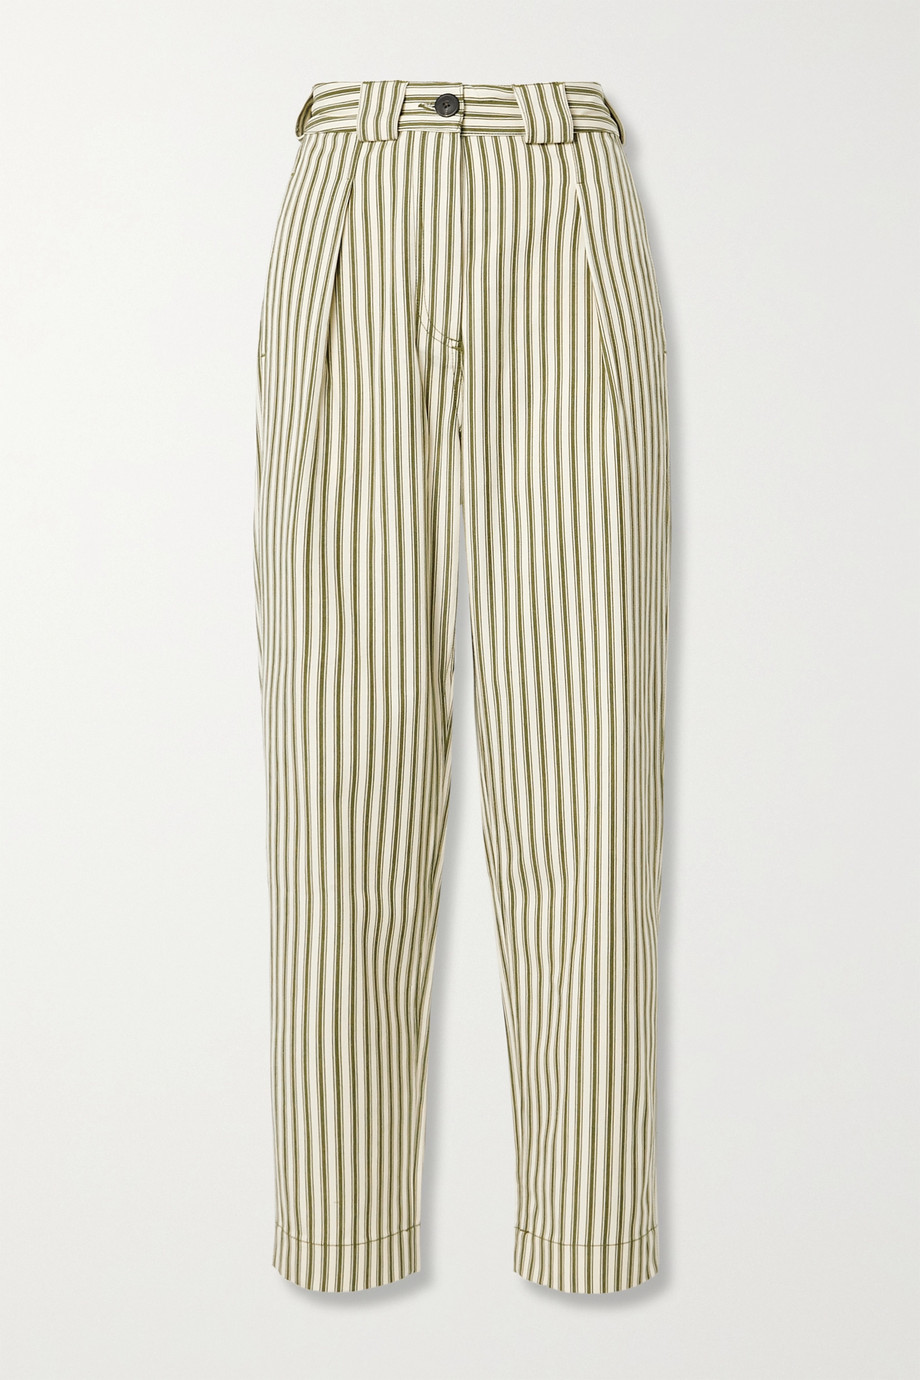 Mara Hoffman + NET SUSTAIN Jade striped Tencel and organic cotton-blend twill tapered pants